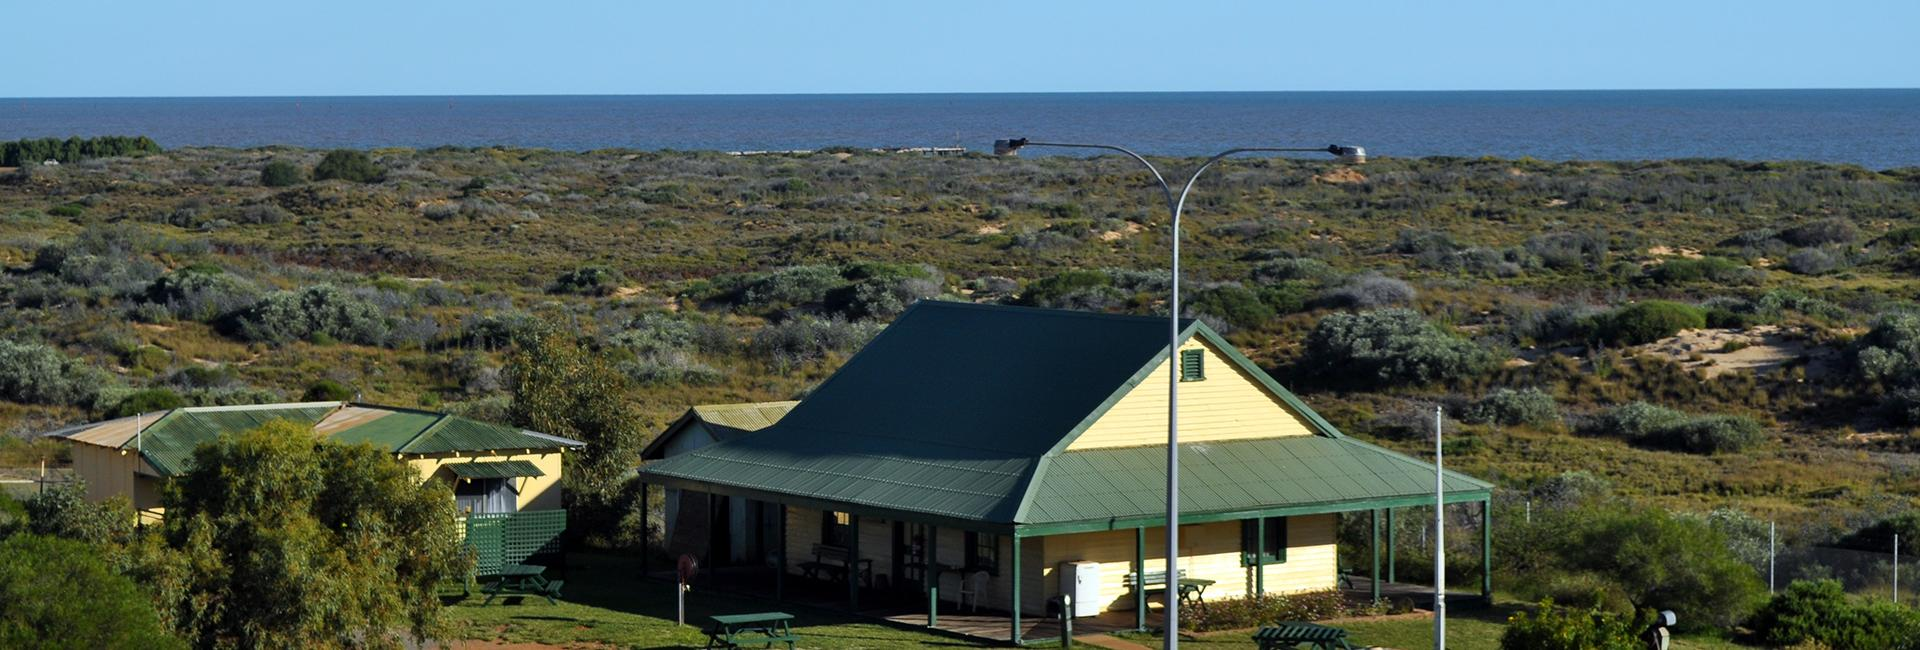 Lighthouse Cottage Museum Carnarvon Heritage Precinct